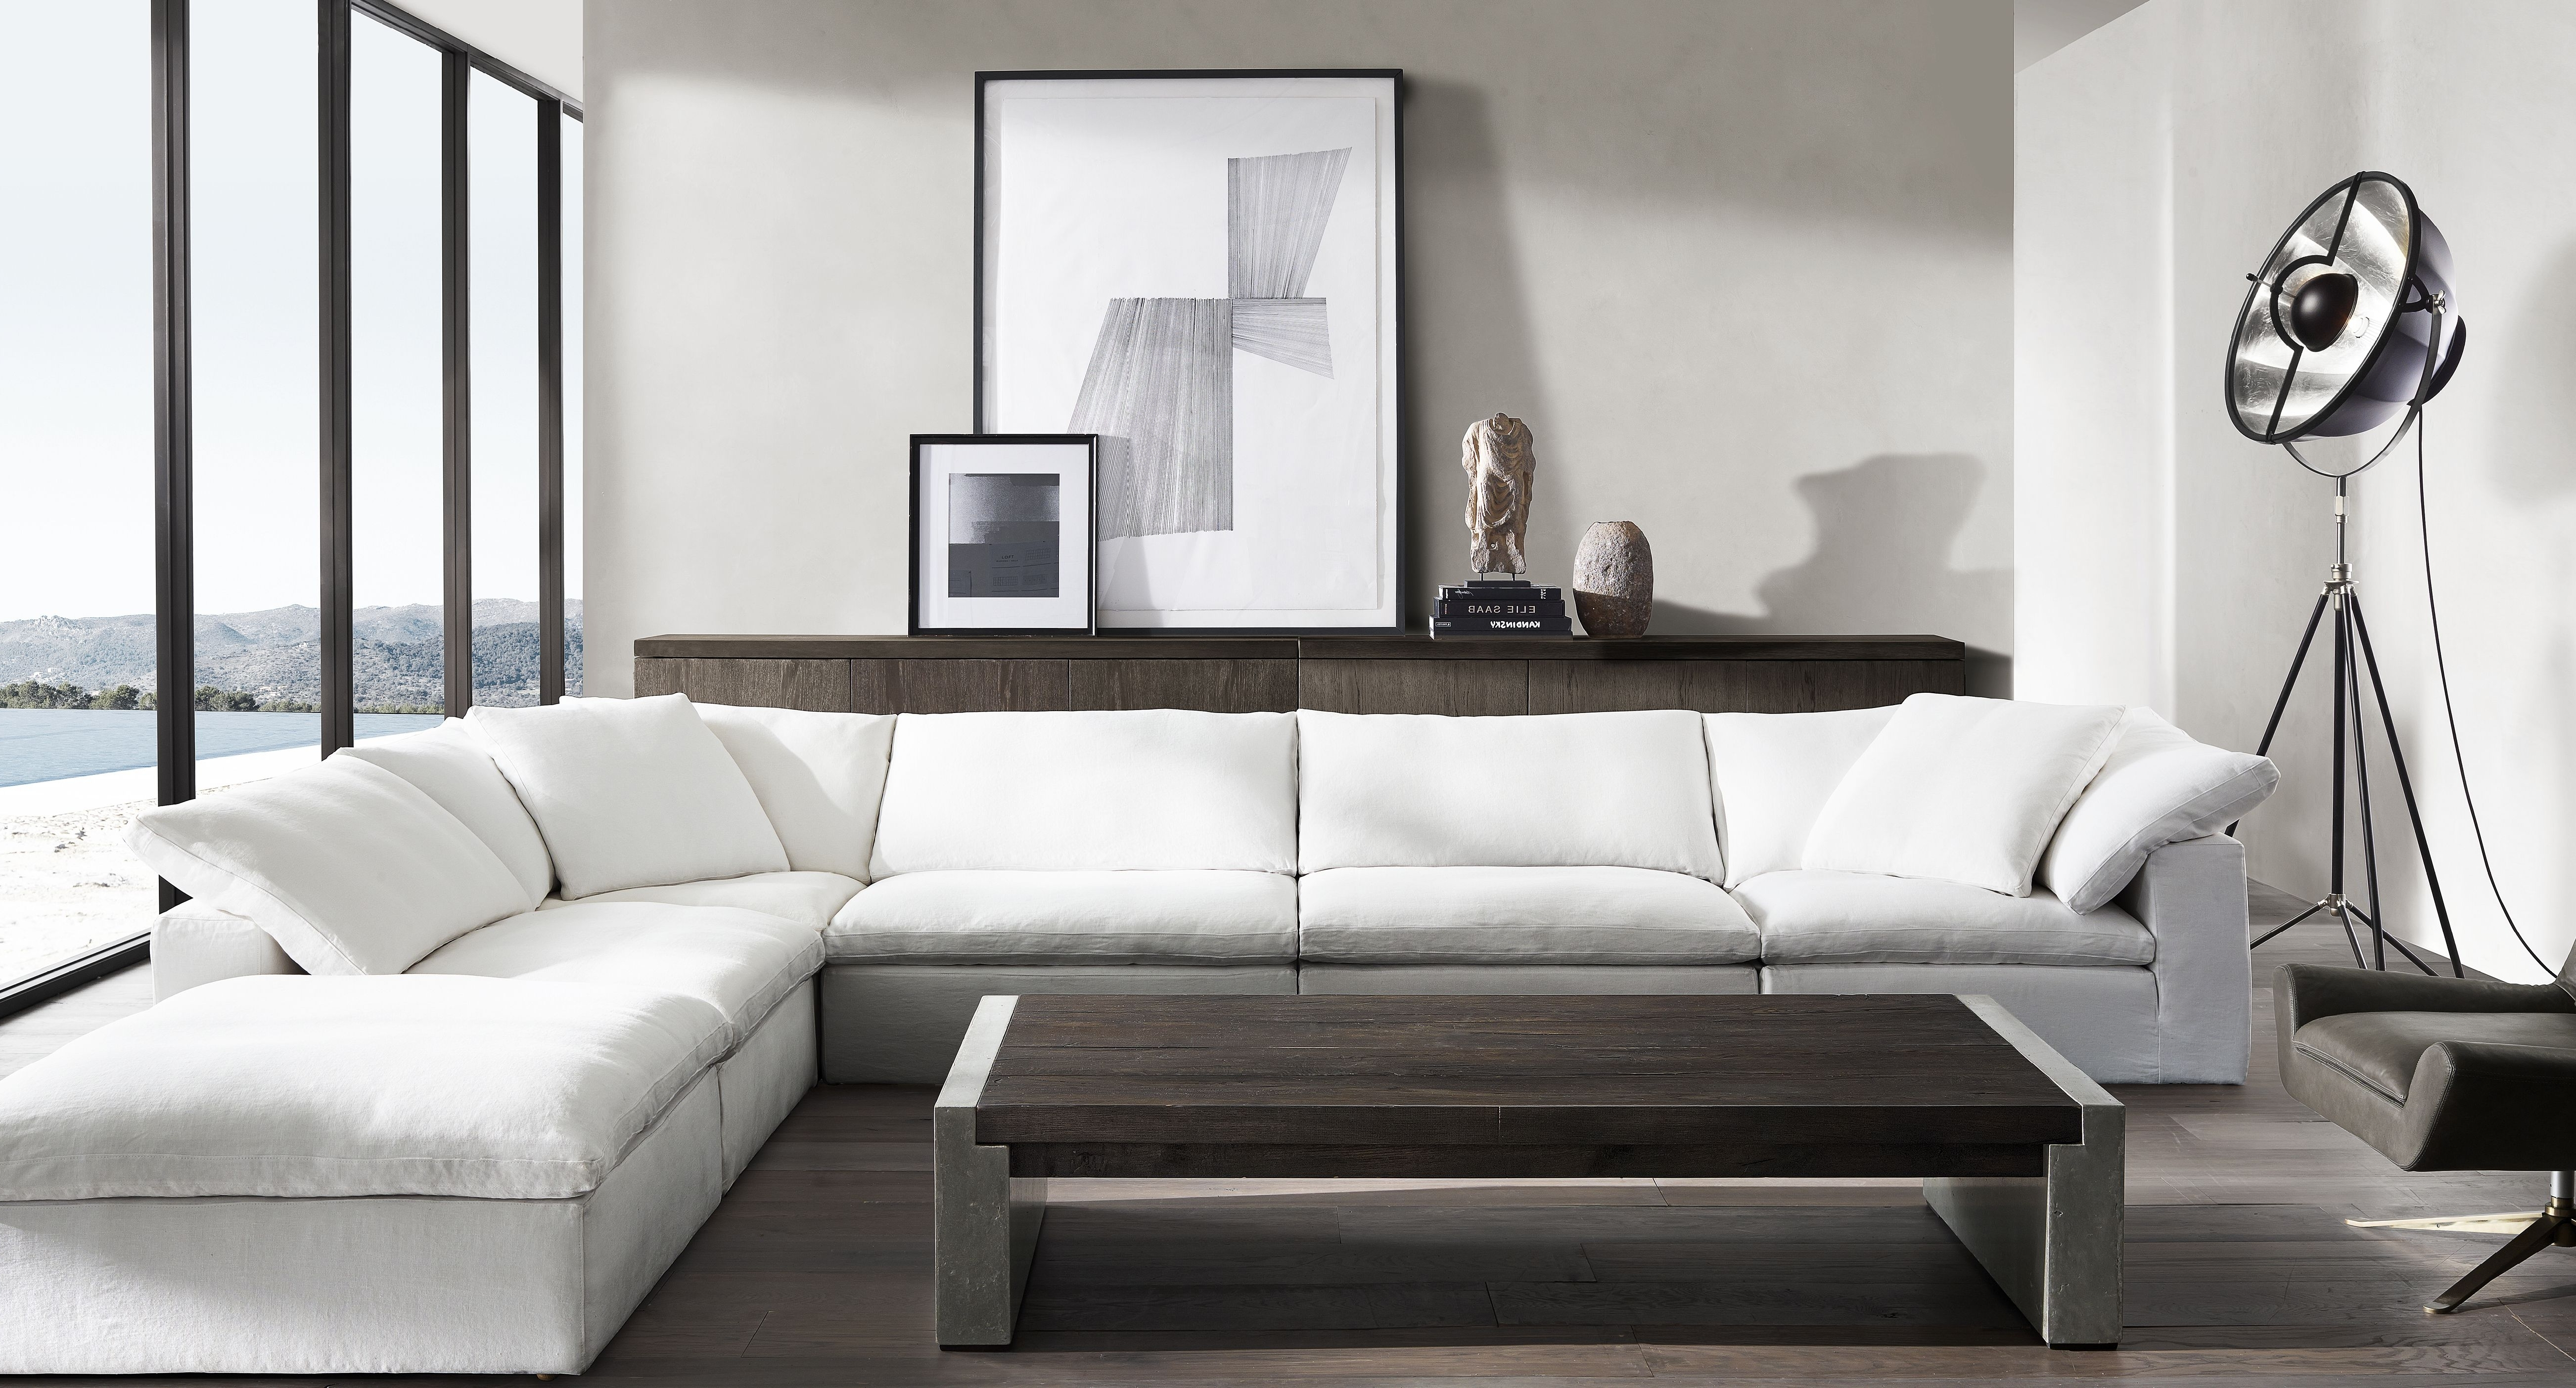 Restoration Hardware Sectional Sofas With Widely Used Everything Kendall Jenner Is Buying For Her New House, Including A (View 11 of 15)